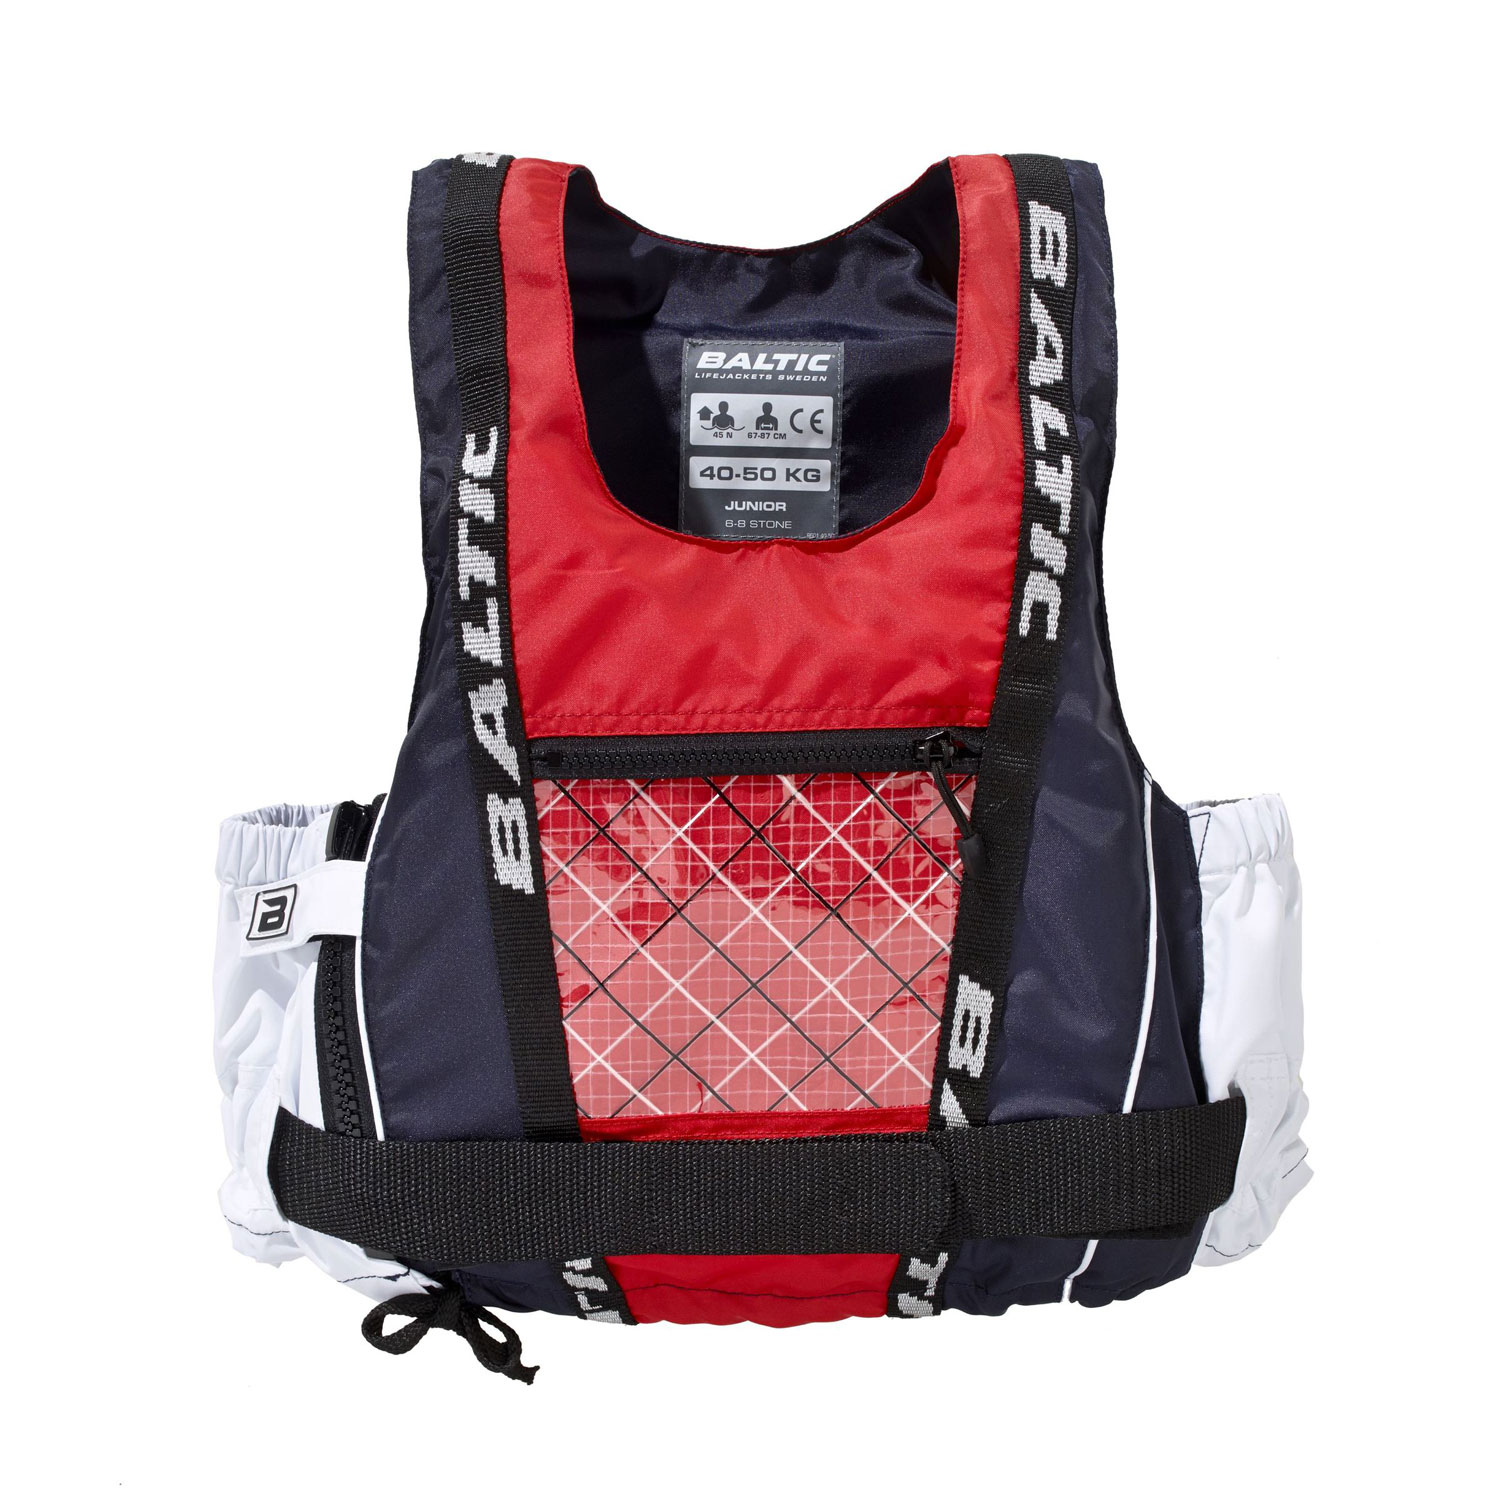 Details about Baltic Junior Dinghy Pro Buoyancy Aid - Navy/Red/White